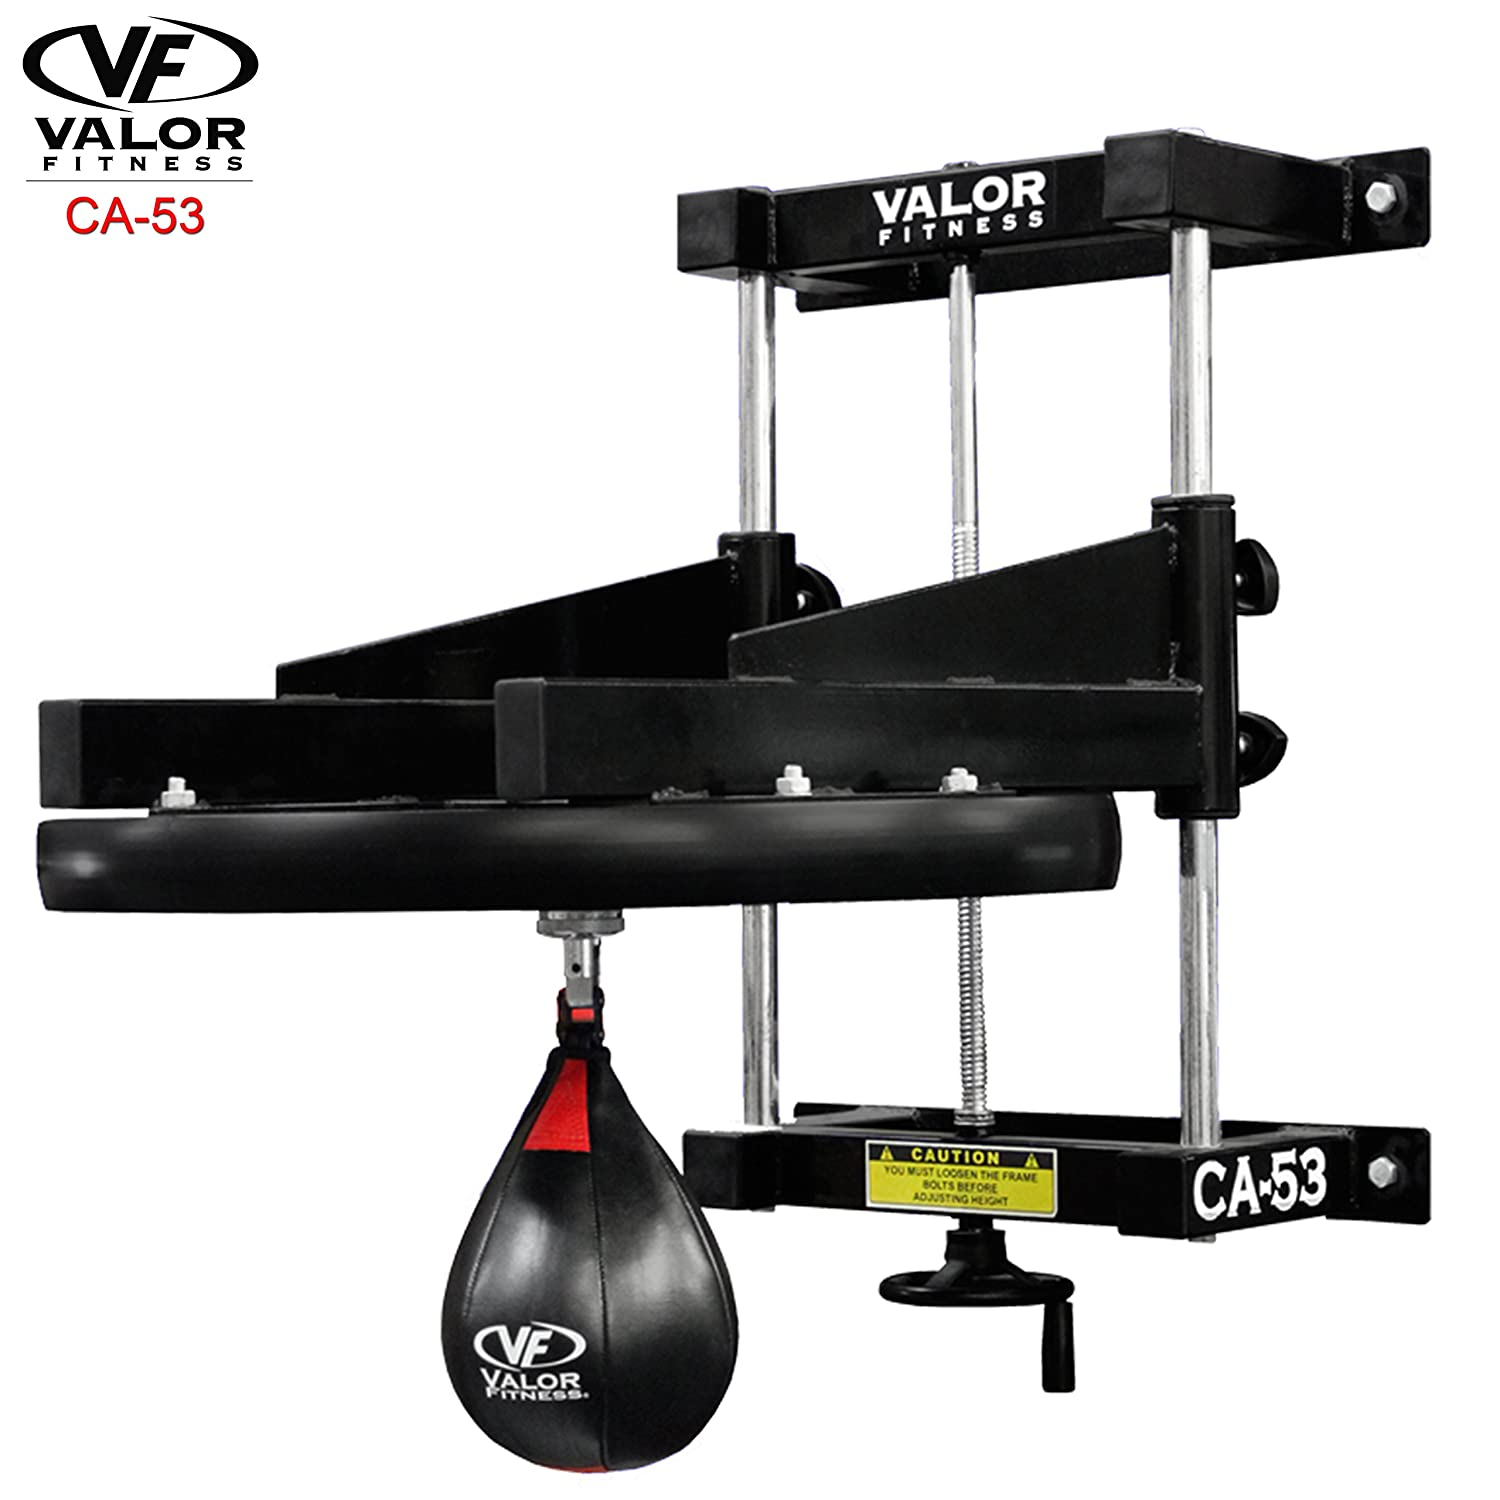 0e40a13f279 Amazon.com   Valor Fitness CA-53 Boxing Speed Bag Platform with Bag - 2 in.  Platform   Speed Punching Bag Platforms   Sports   Outdoors